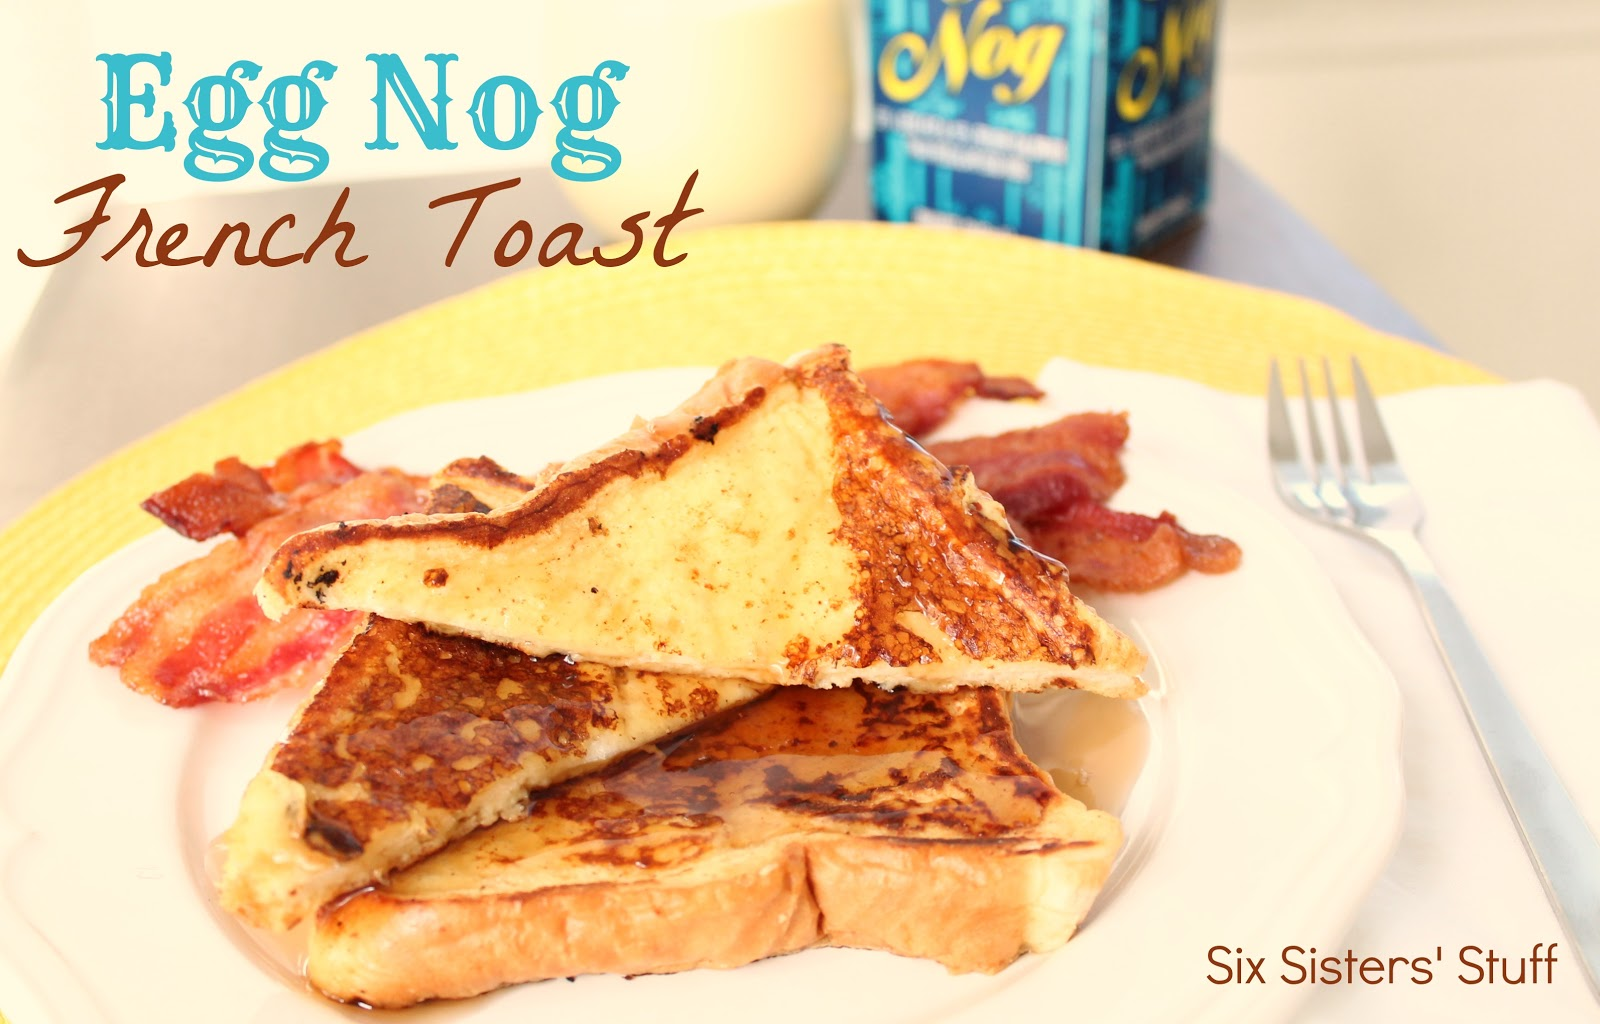 the grocery store and seeing egg nog on the shelves! This french toast ...